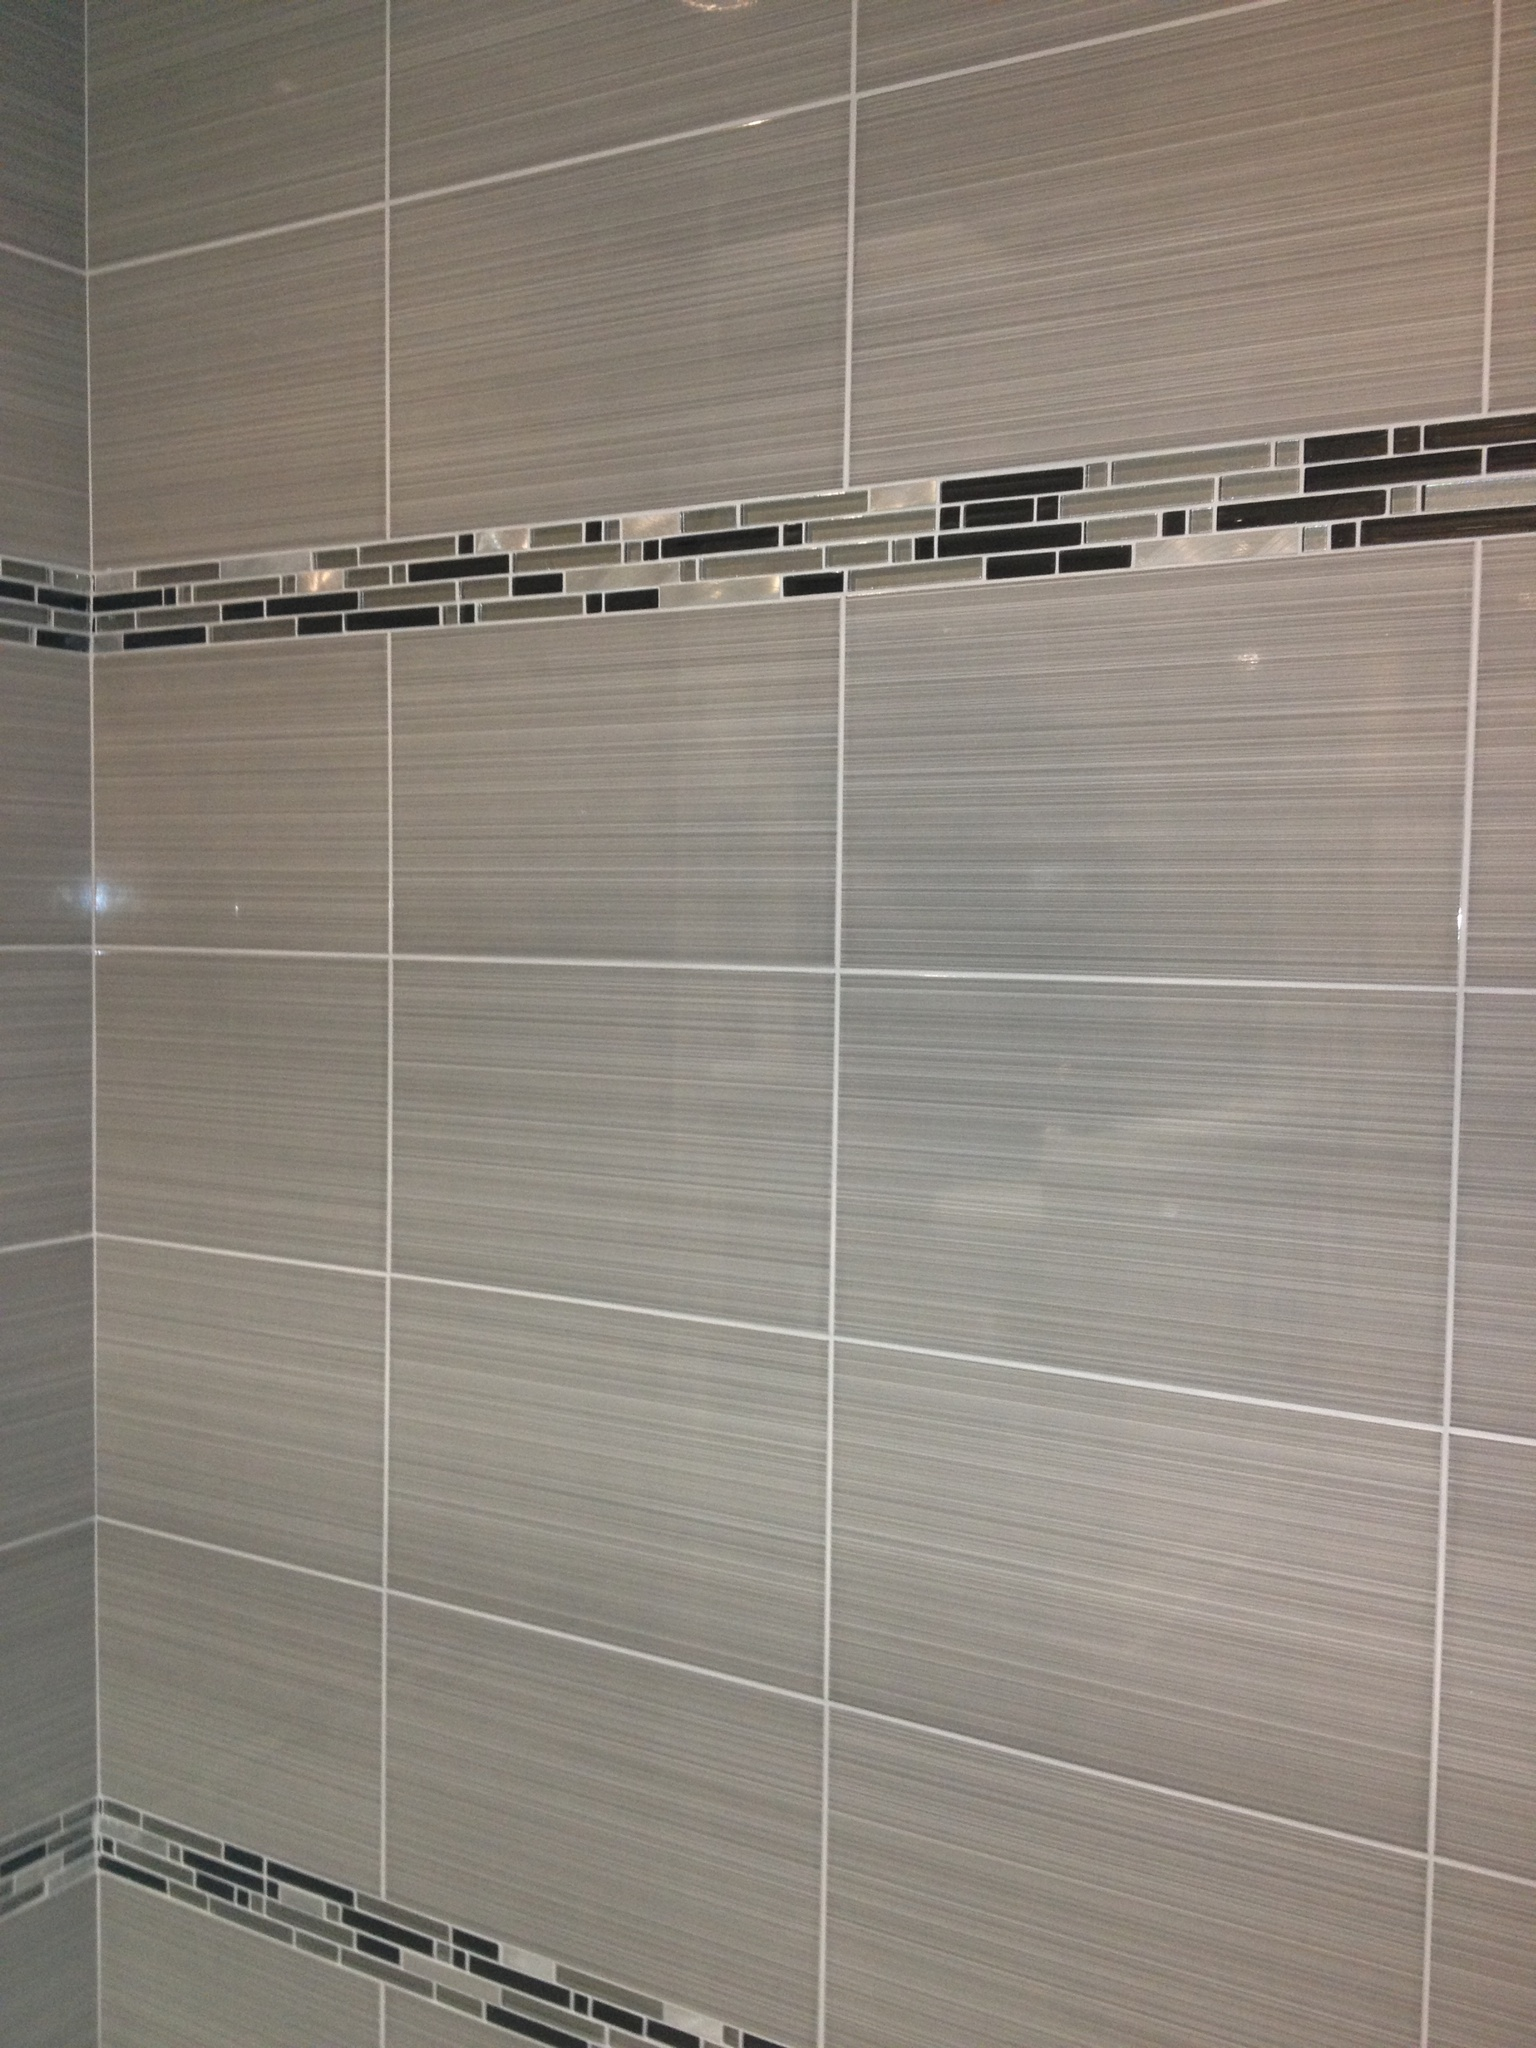 Bathroom Glass Tile Accent Ideas 6d4bb44bdc09f4efc8d3a91028e2f9fd